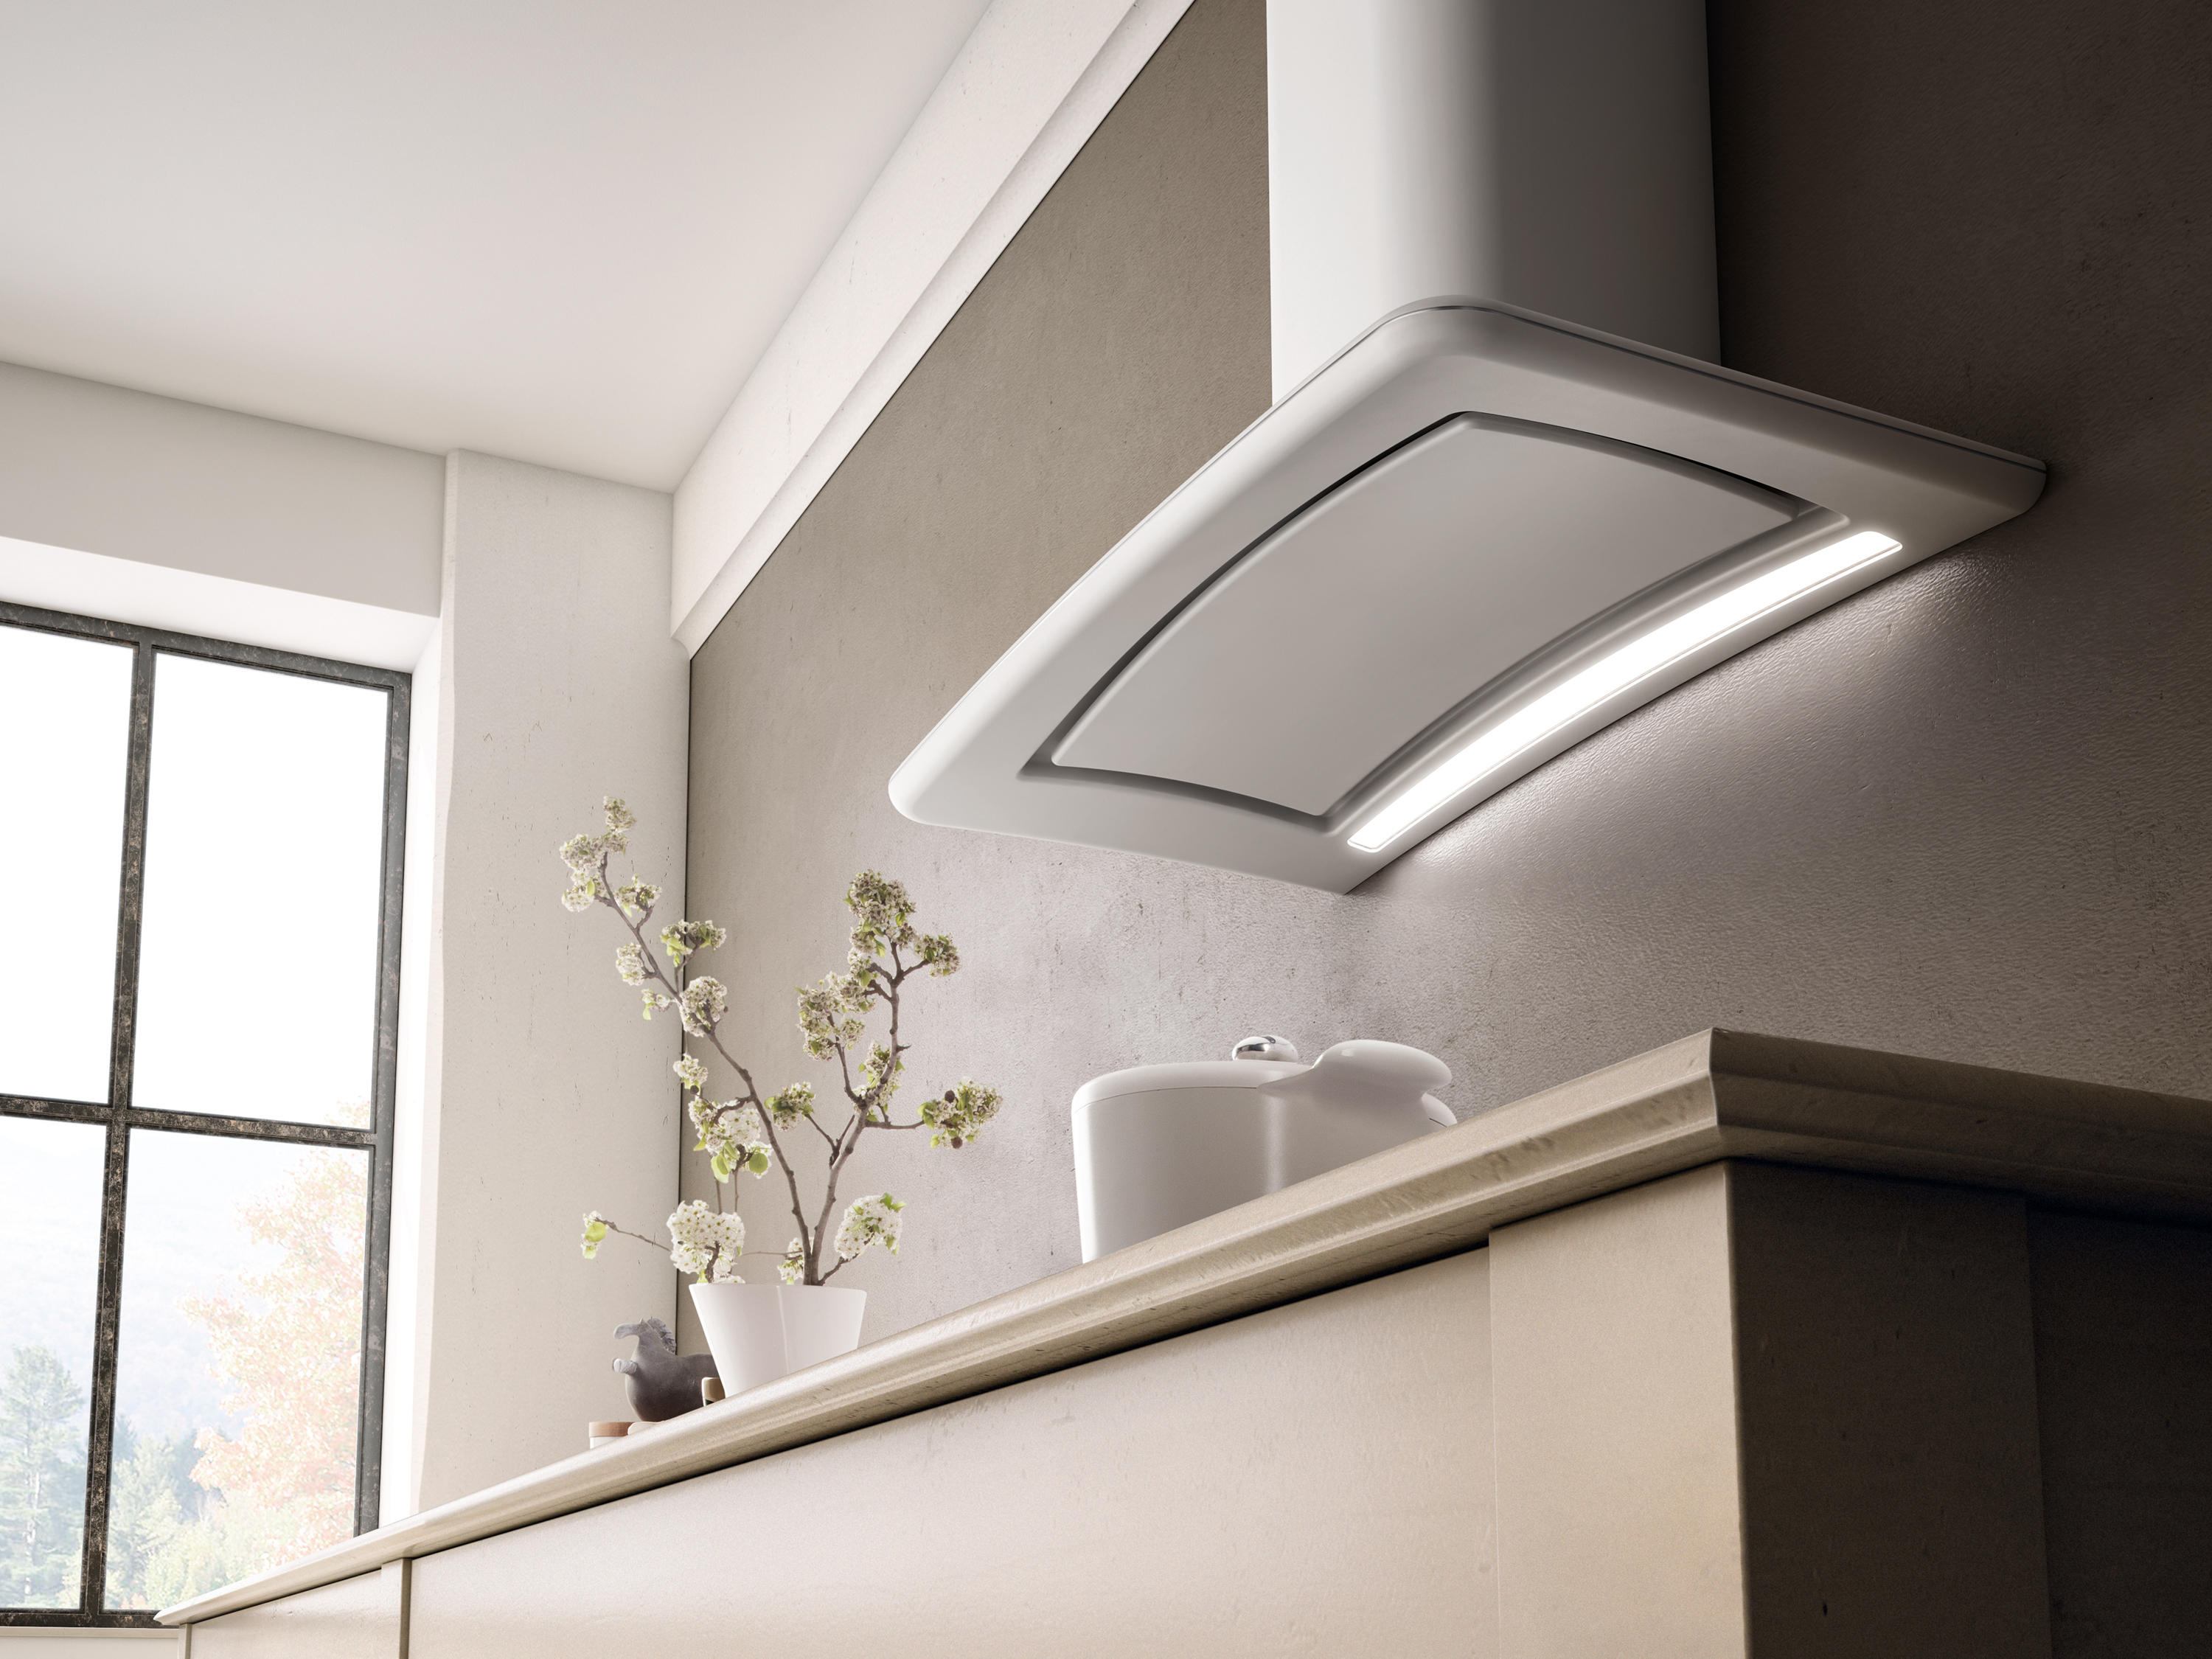 Elica Sweet Sweet Wall Mounted Extractors From Elica Architonic